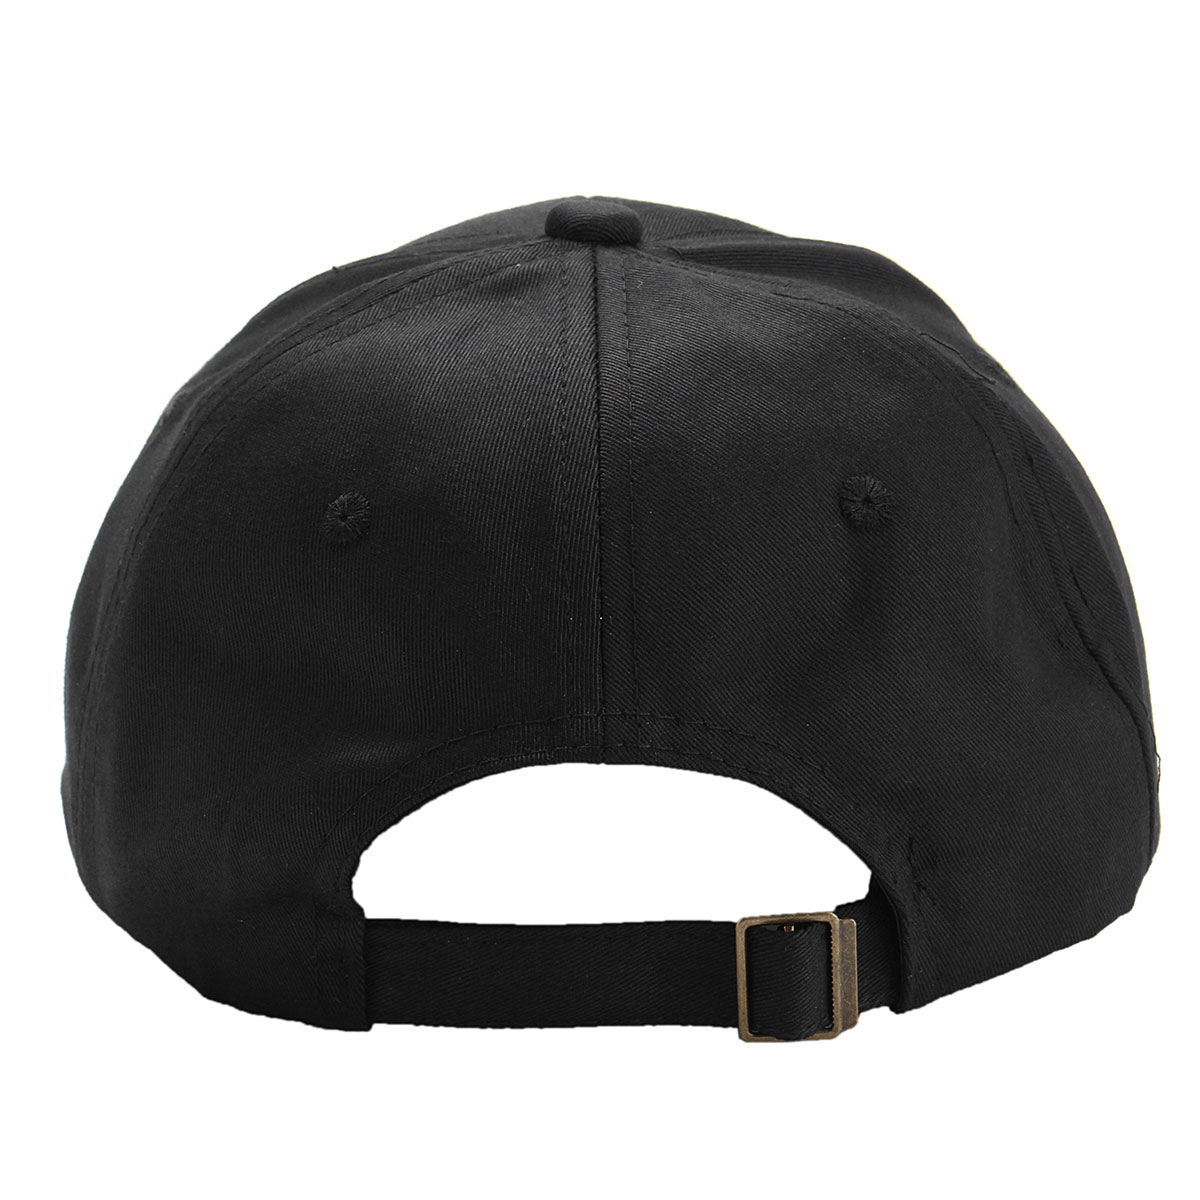 Men Women Moon Black Cotton Baseball Cap Adjustable Hip-hop Sport Hat